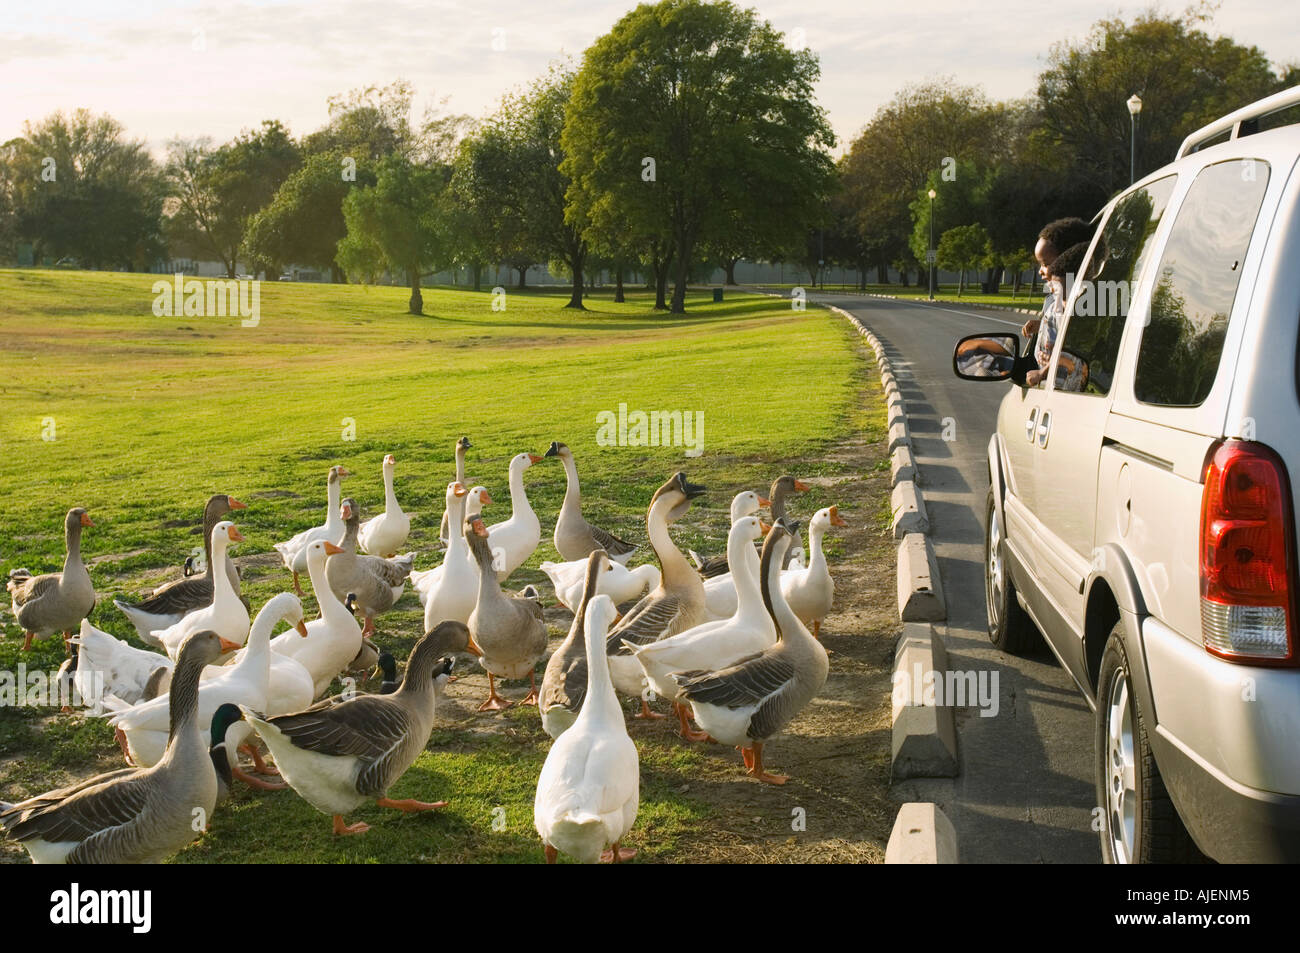 Father and young son looking at geese through car window - Stock Image